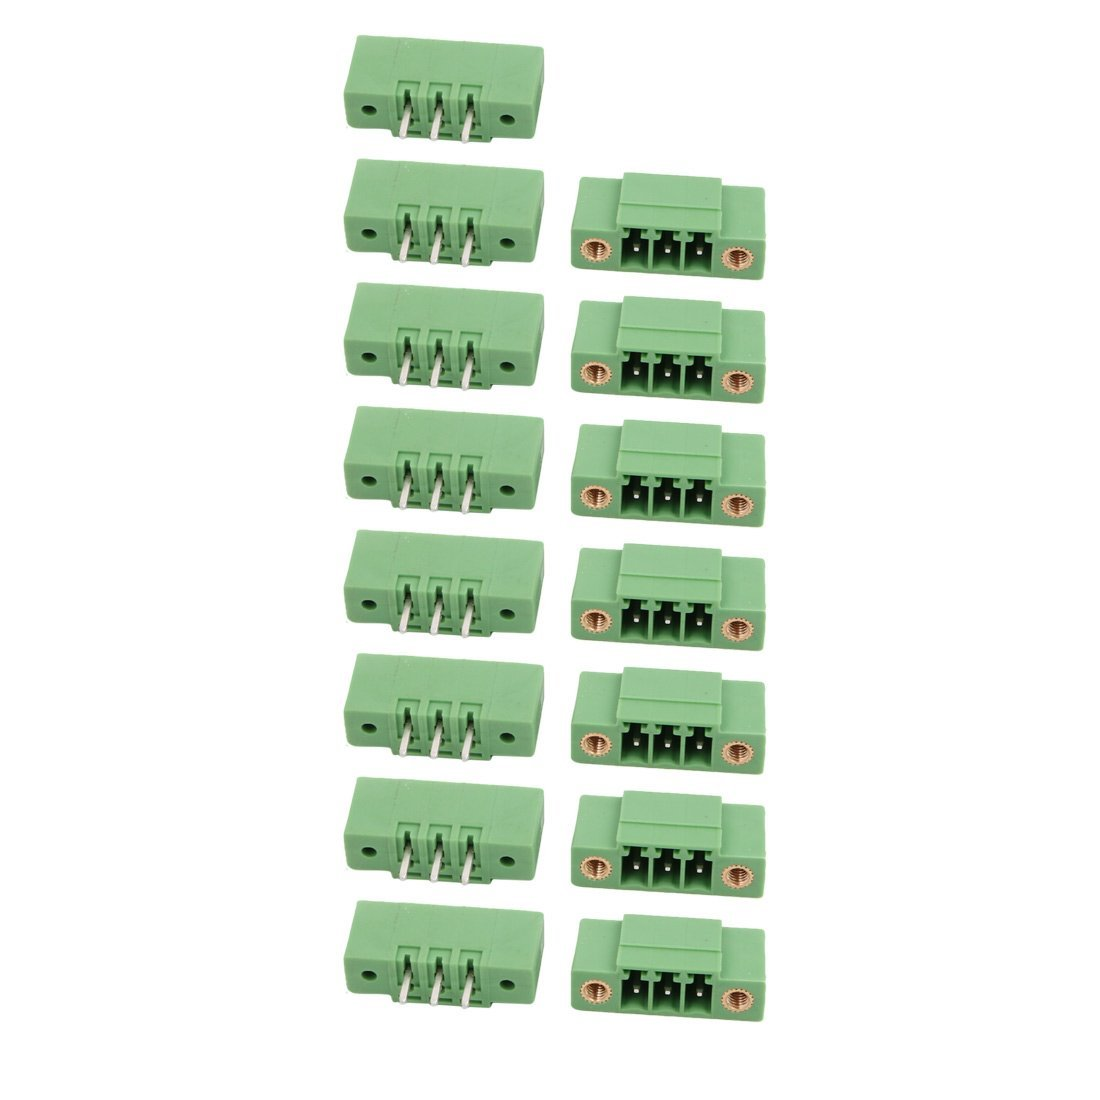 uxcell 15Pcs LZ1VM AC300V 8A 3.5mm Pitch 3P PCB Terminal Block Wire Connection